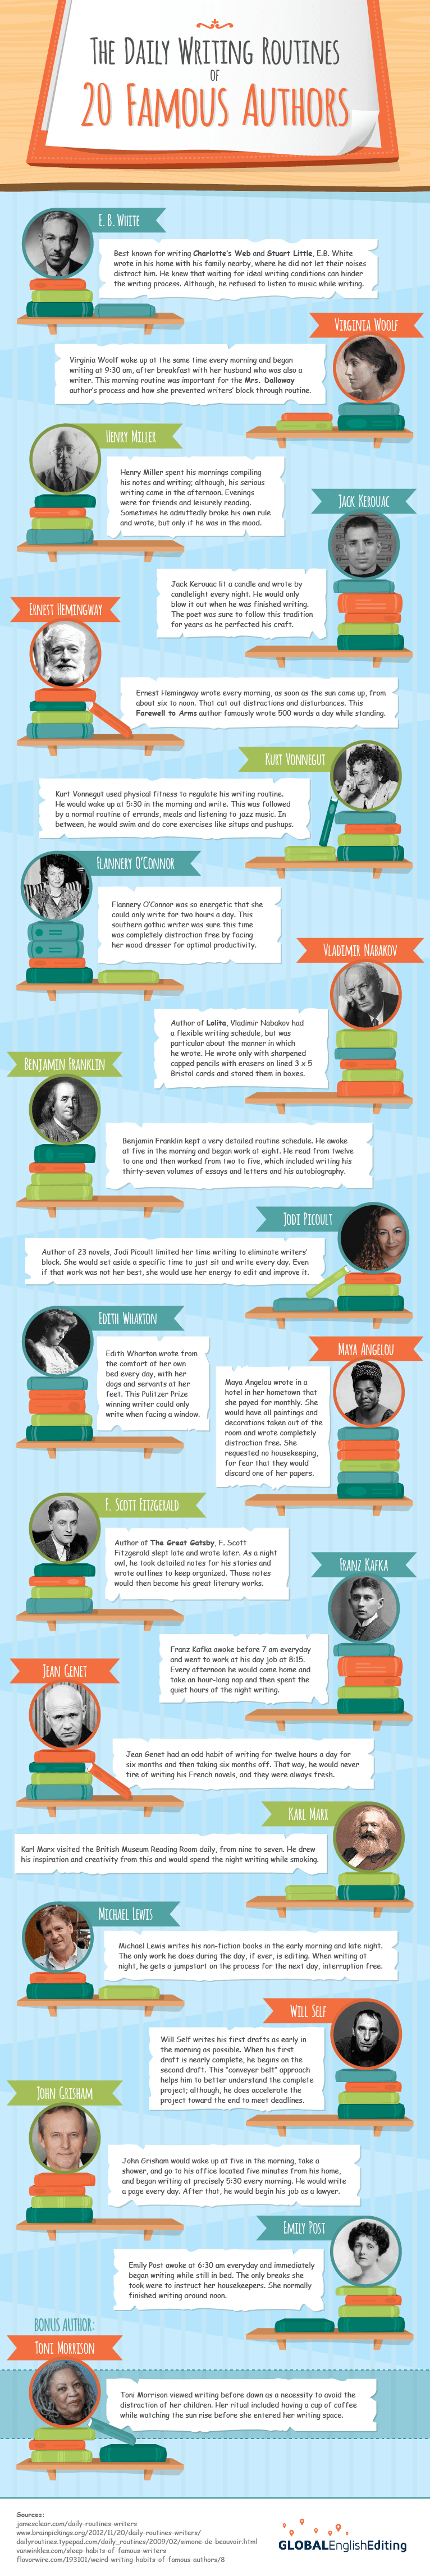 writing routines of famous authors